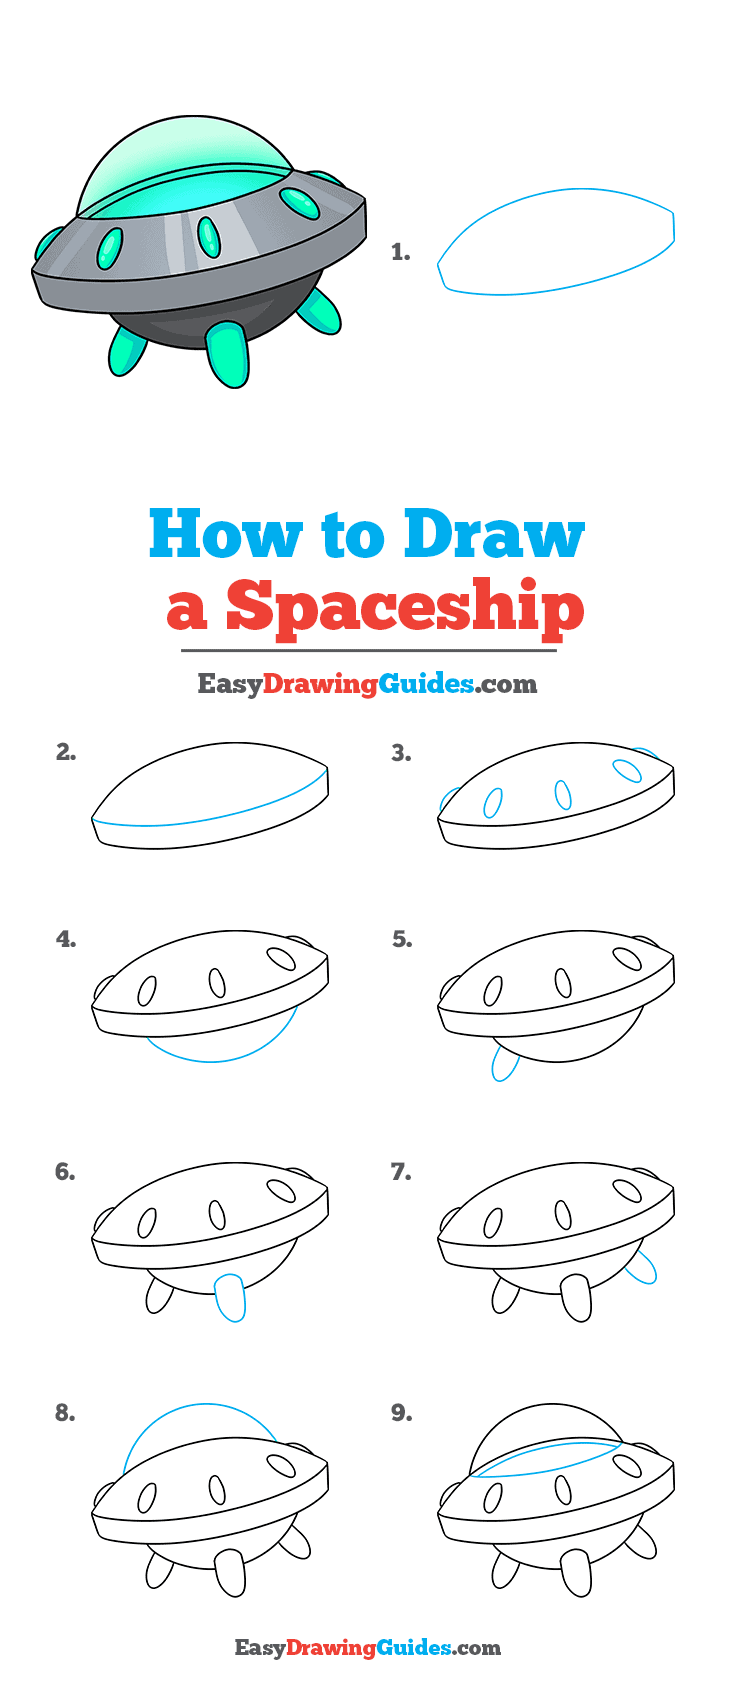 How to Draw a Spaceship Step by Step Tutorial Image